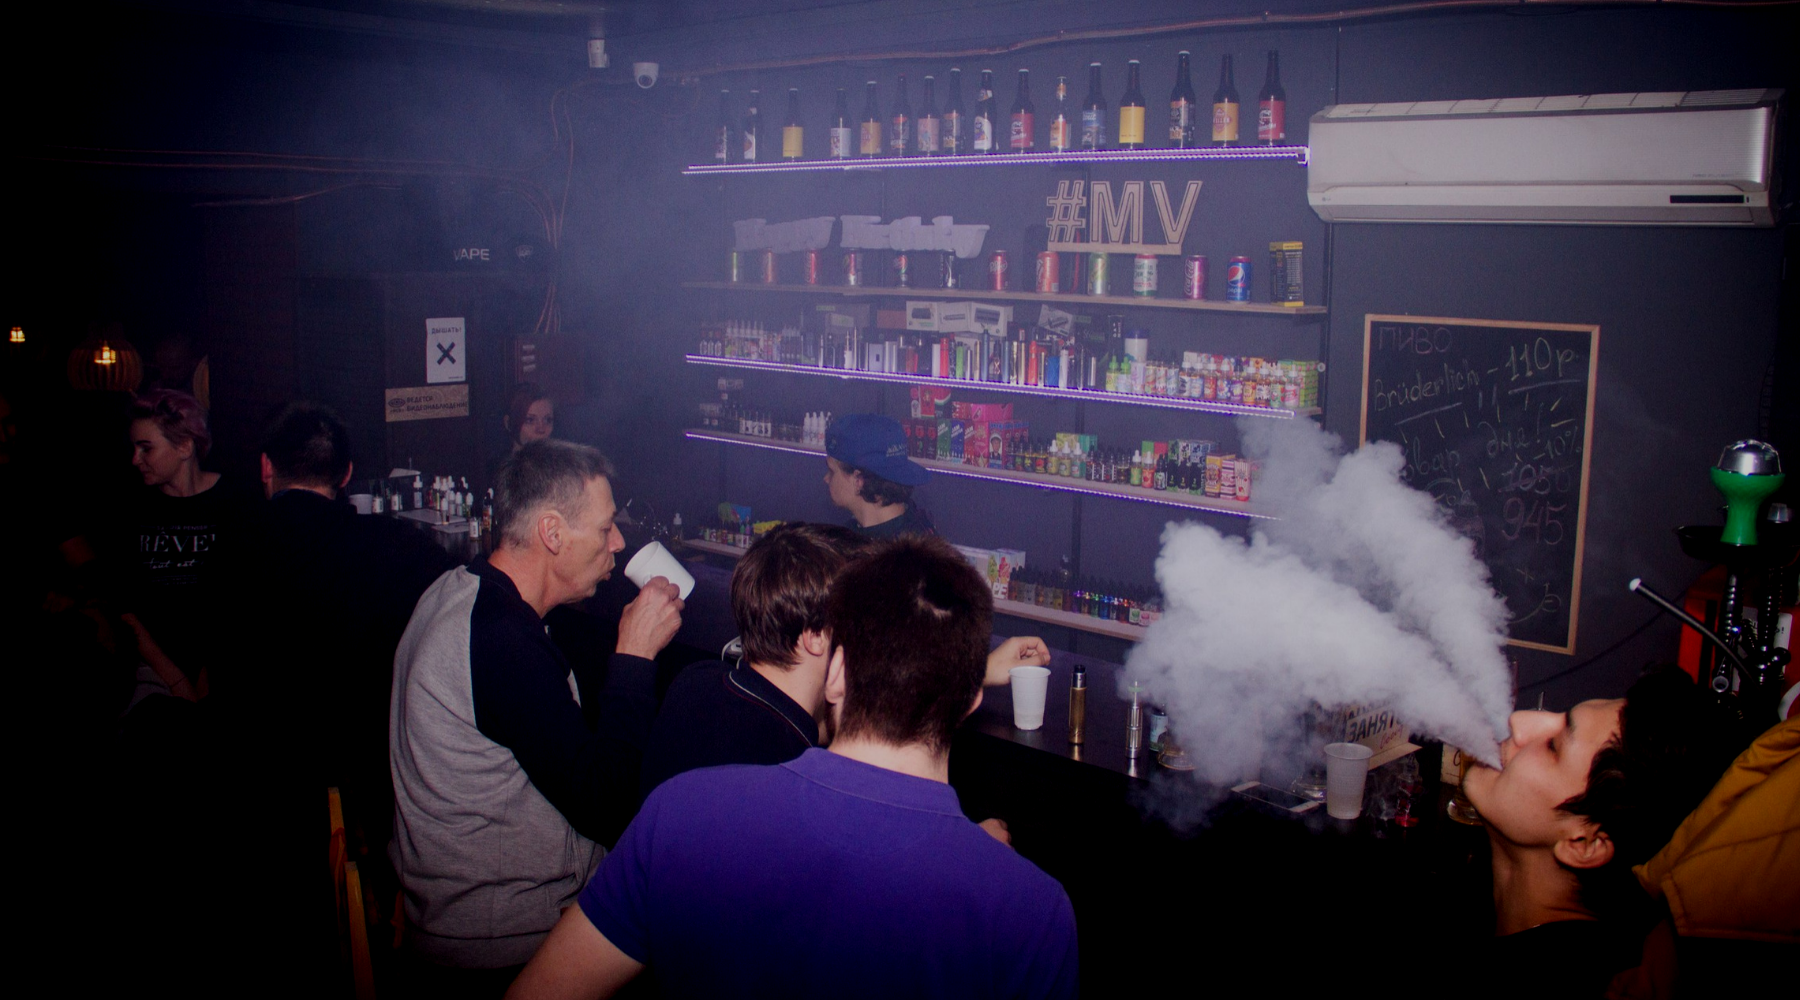 Vape Shop in Blackpool, UK